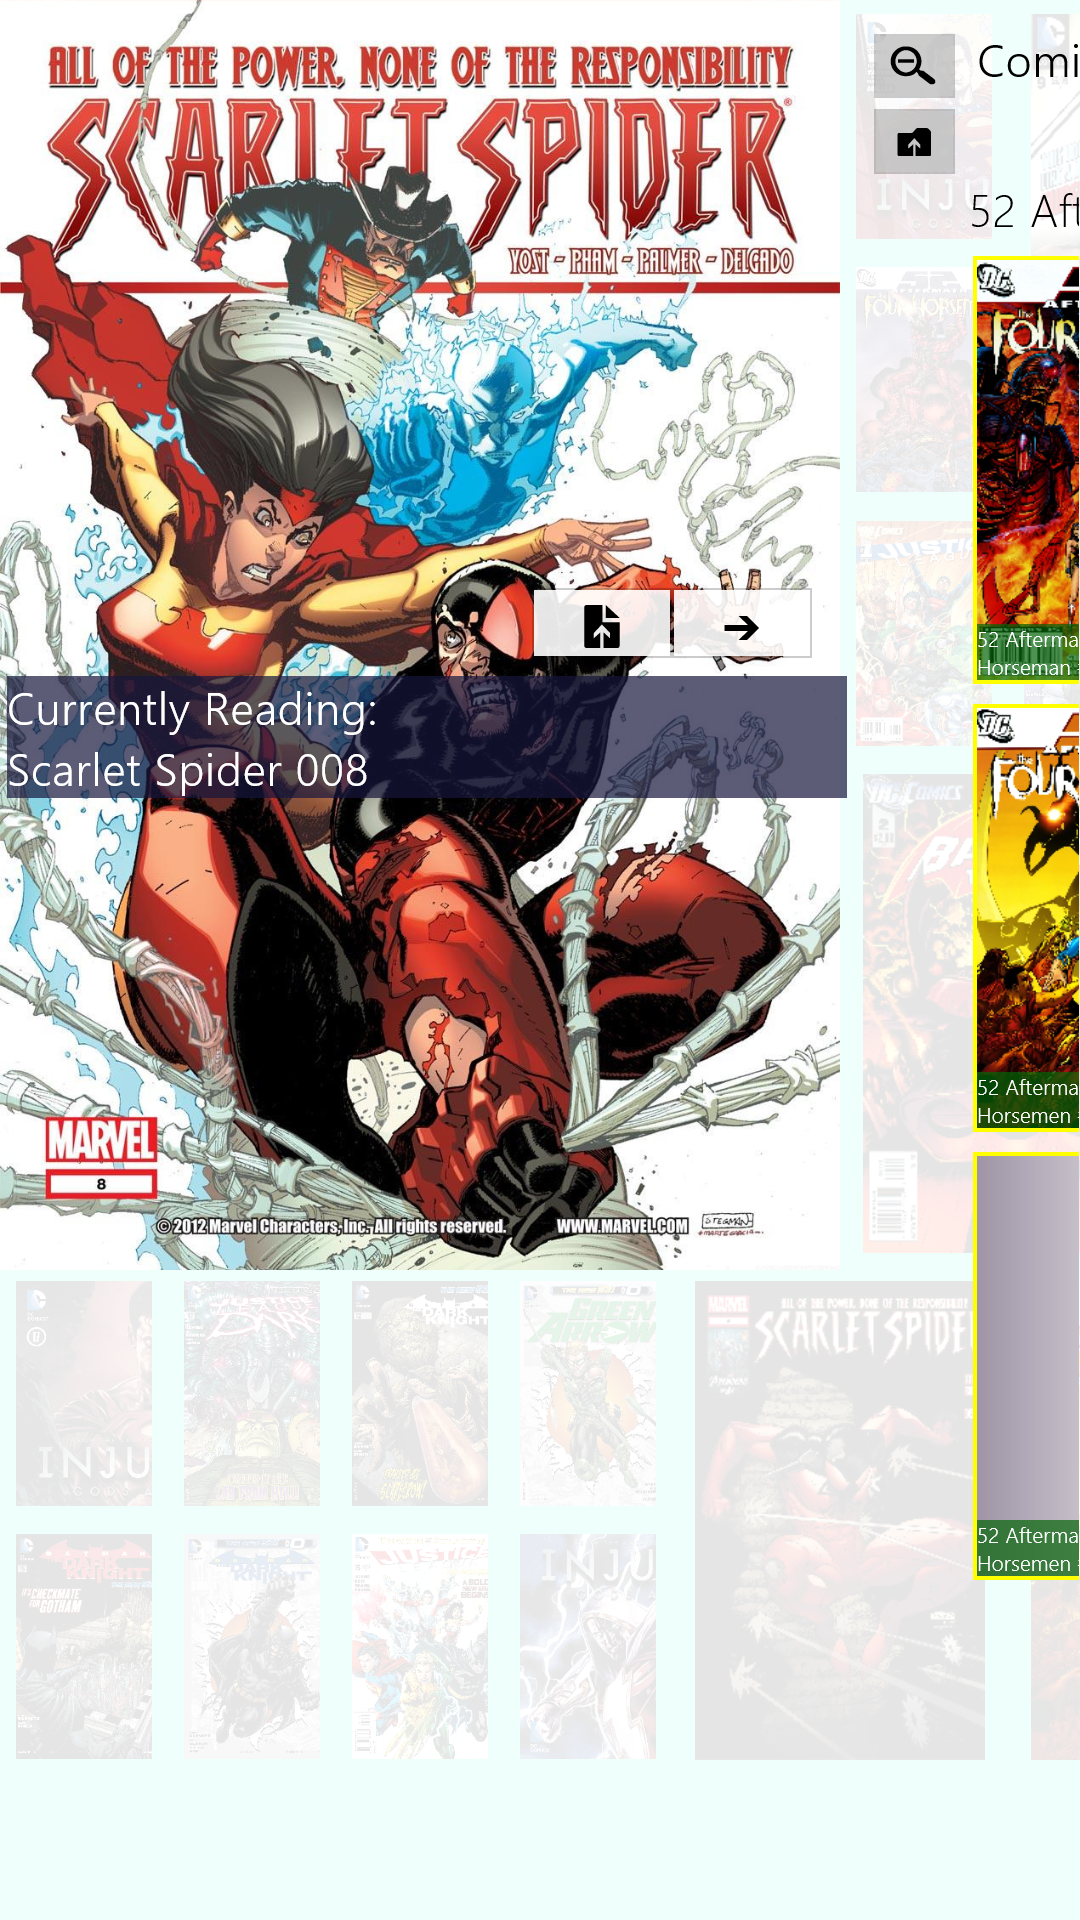 Poster design software for windows 8 1 - I Read My Comics On My Surface Utilizing A Fabulous App Called Comicsjolt The Well Polished And Feature Rich App Is Developed By An Indie Developer